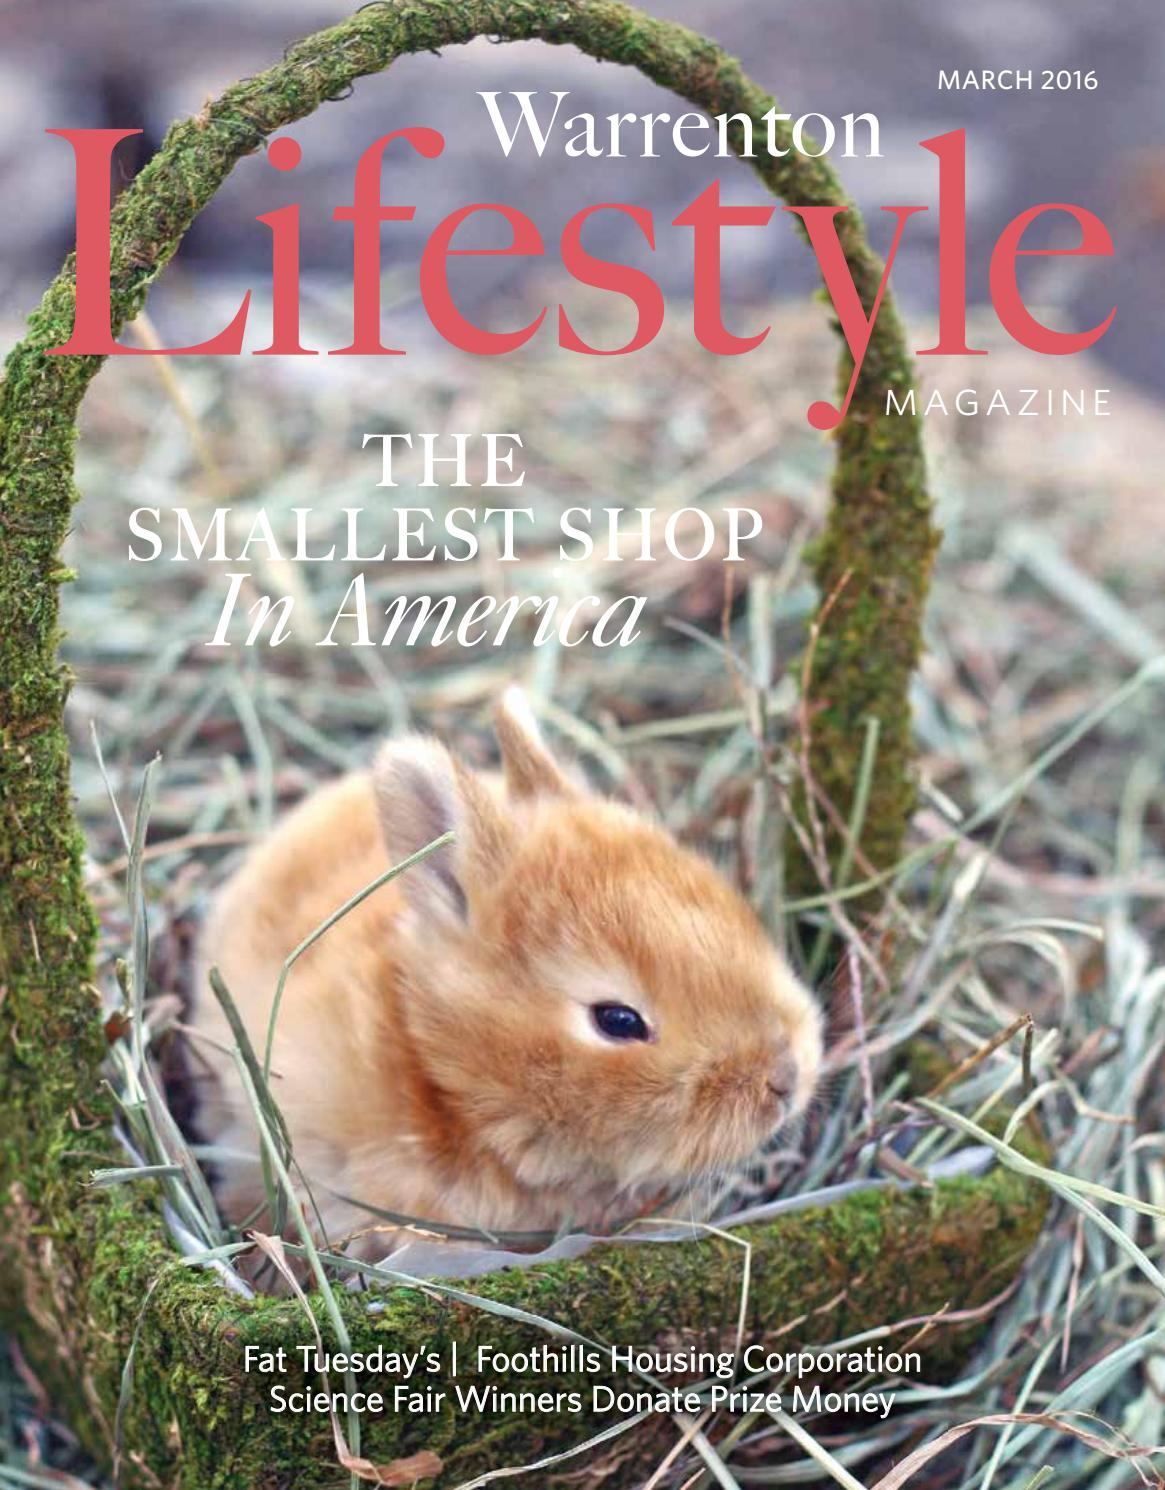 Warrenton Lifestyle Magazine March 2016 By Piedmont Publishing Group Wiring Money Domestically Issuu